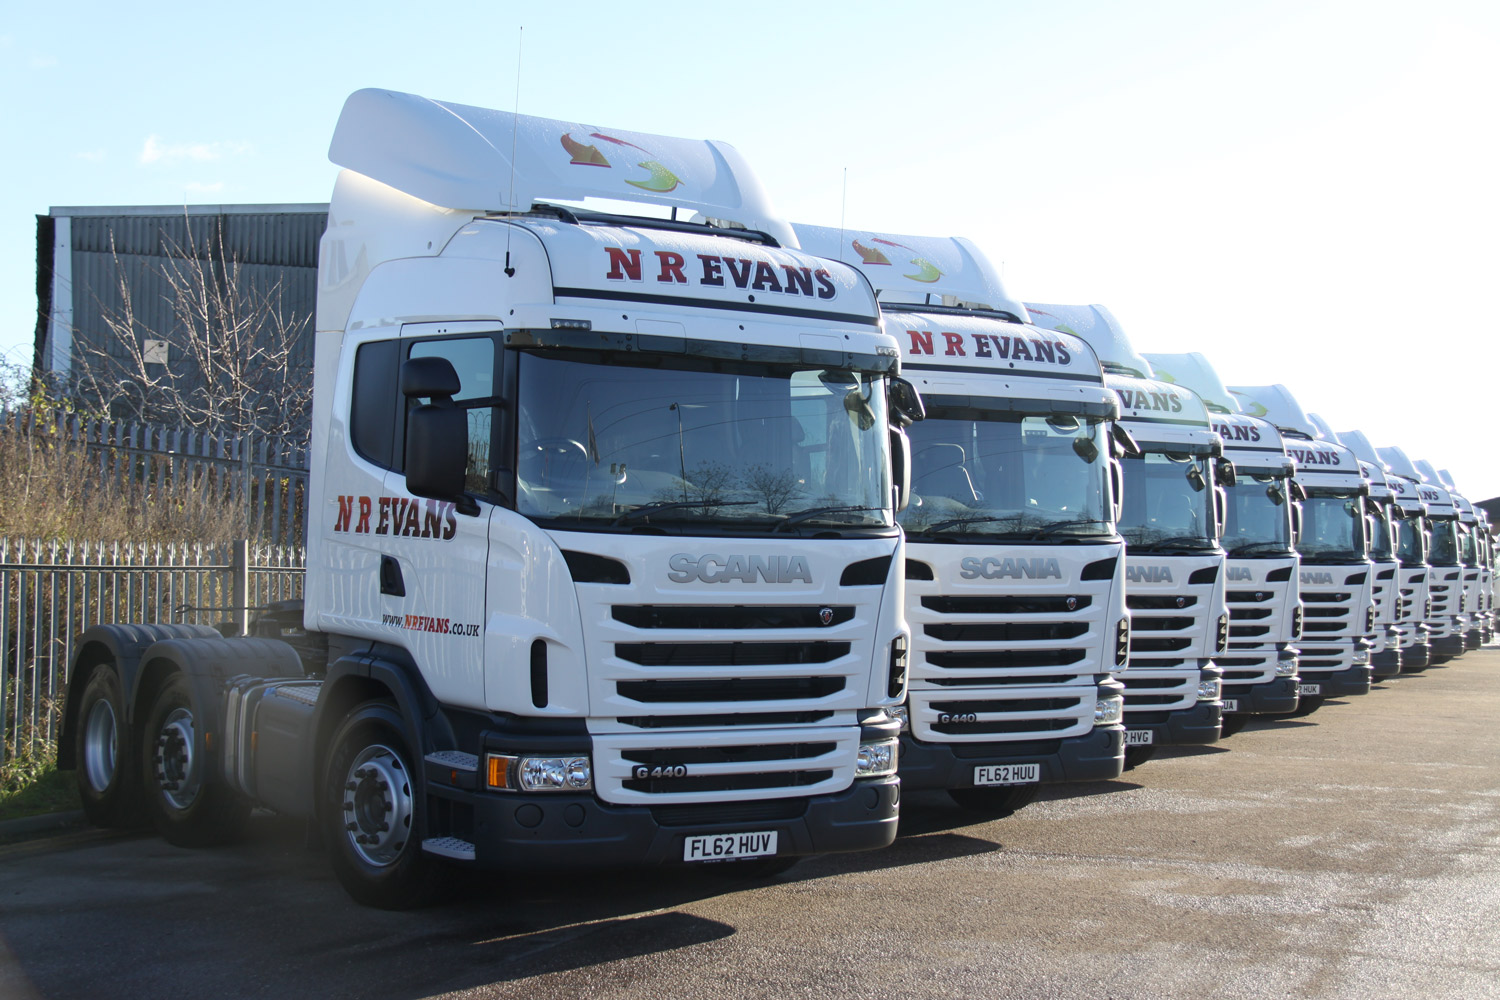 The twenty g440 6 2 4 mna highline scania trucks will form an integral part of the 150 strong fleet that nr evans operates throughout the uk